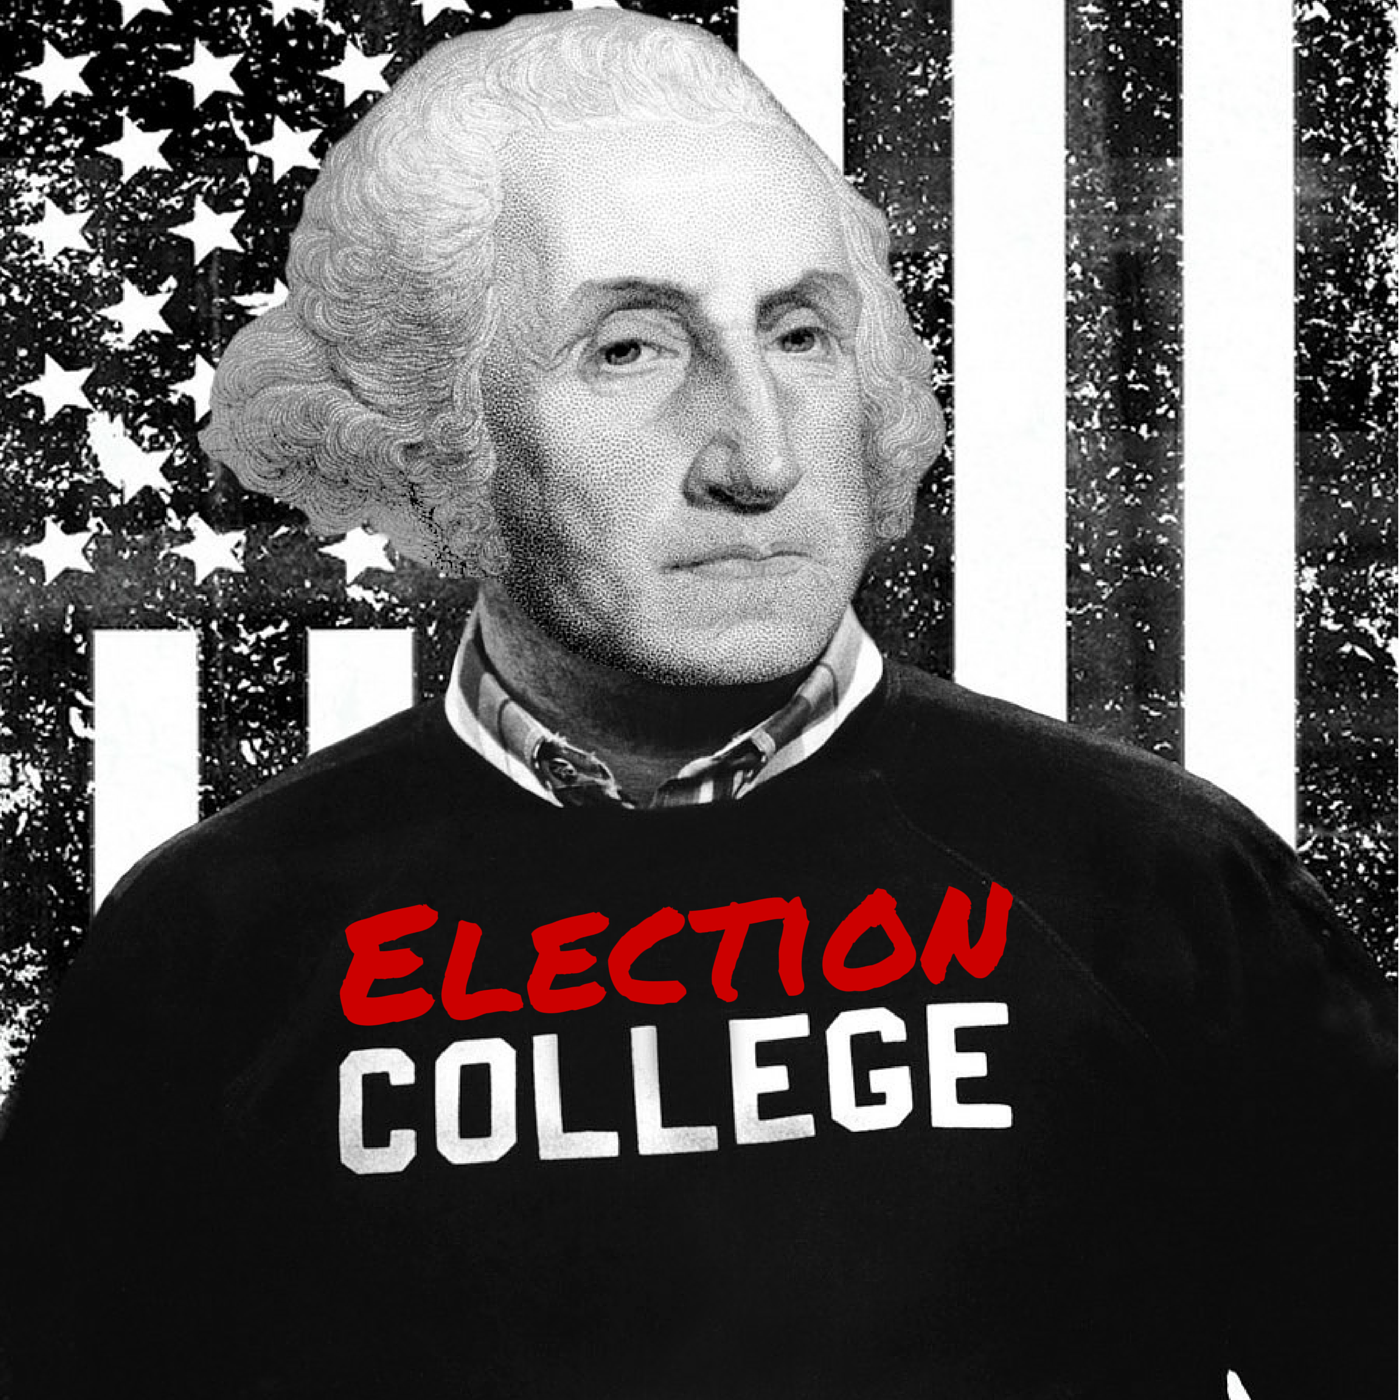 John Tyler - Part 2 | Episode #184 | Election College: United States Presidential Election History